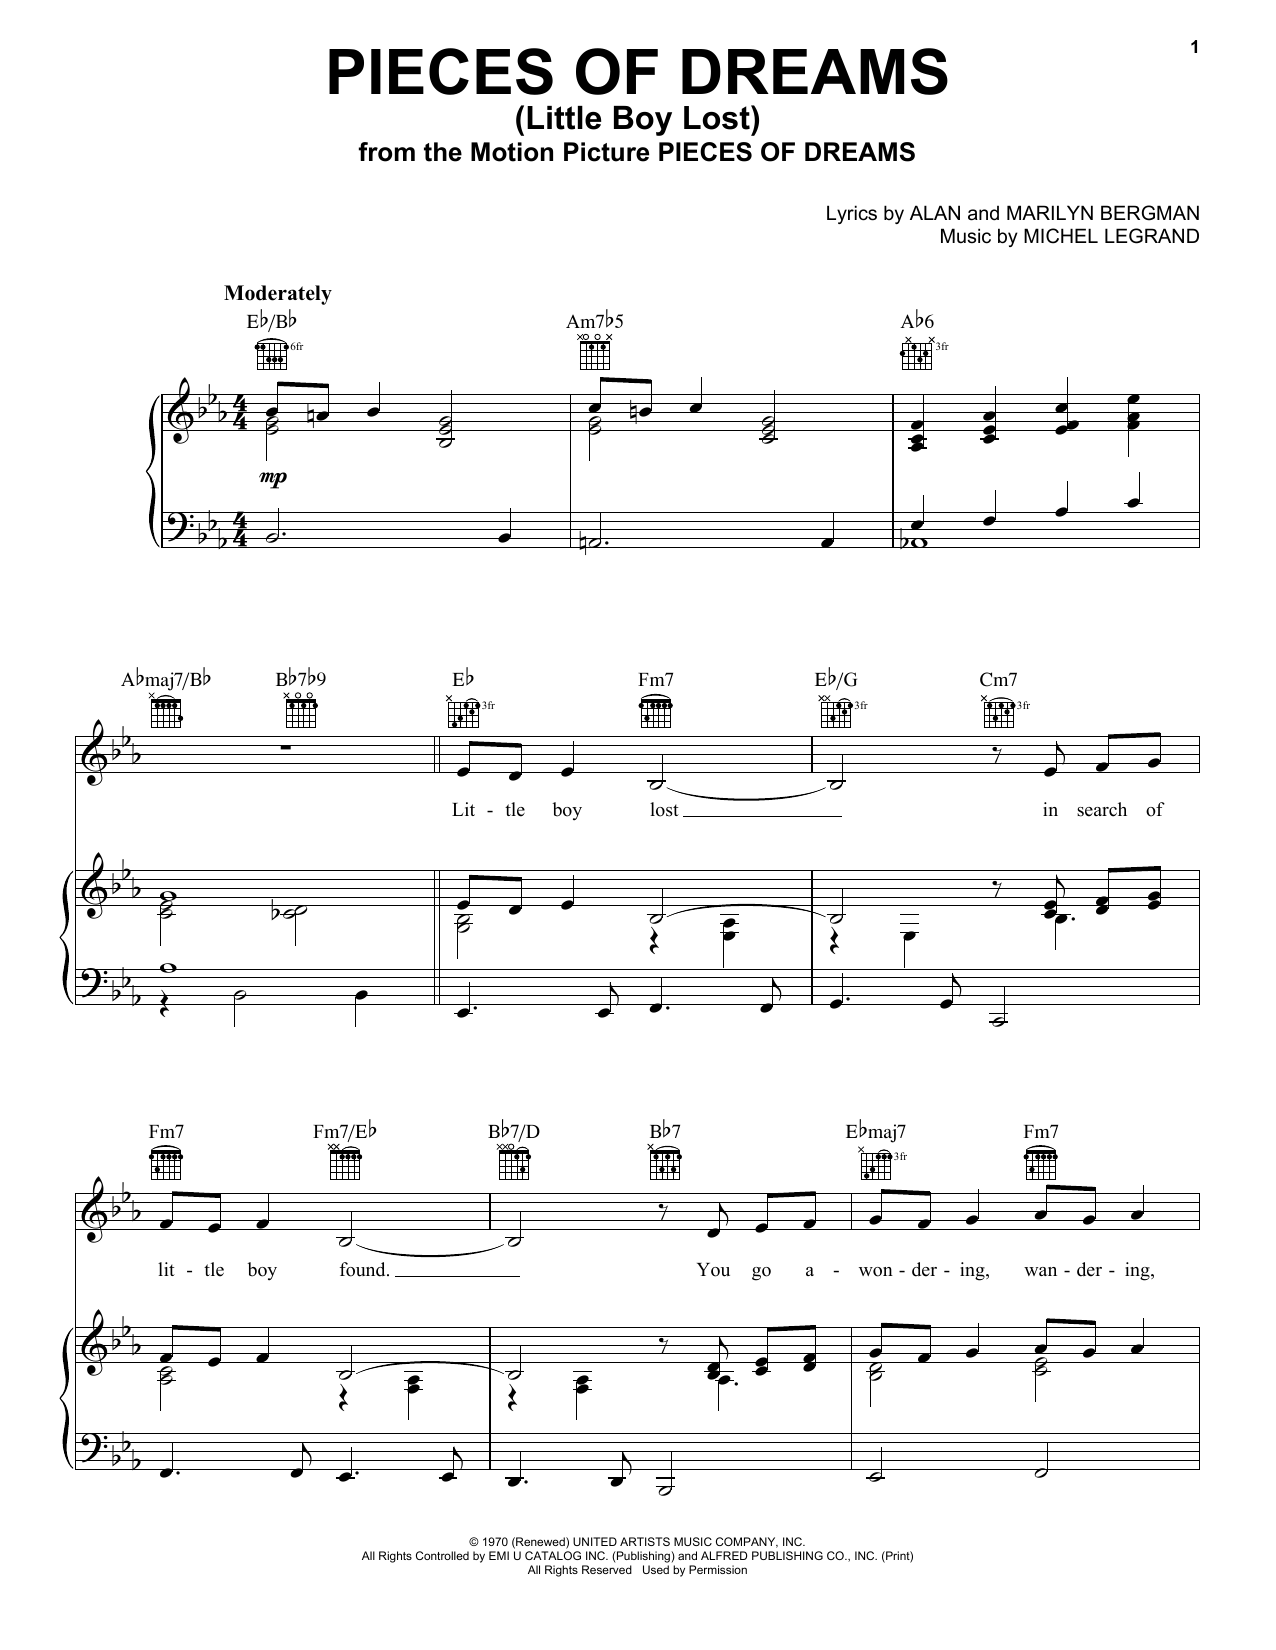 Alan Bergman Pieces Of Dreams (Little Boy Lost) sheet music notes and chords. Download Printable PDF.